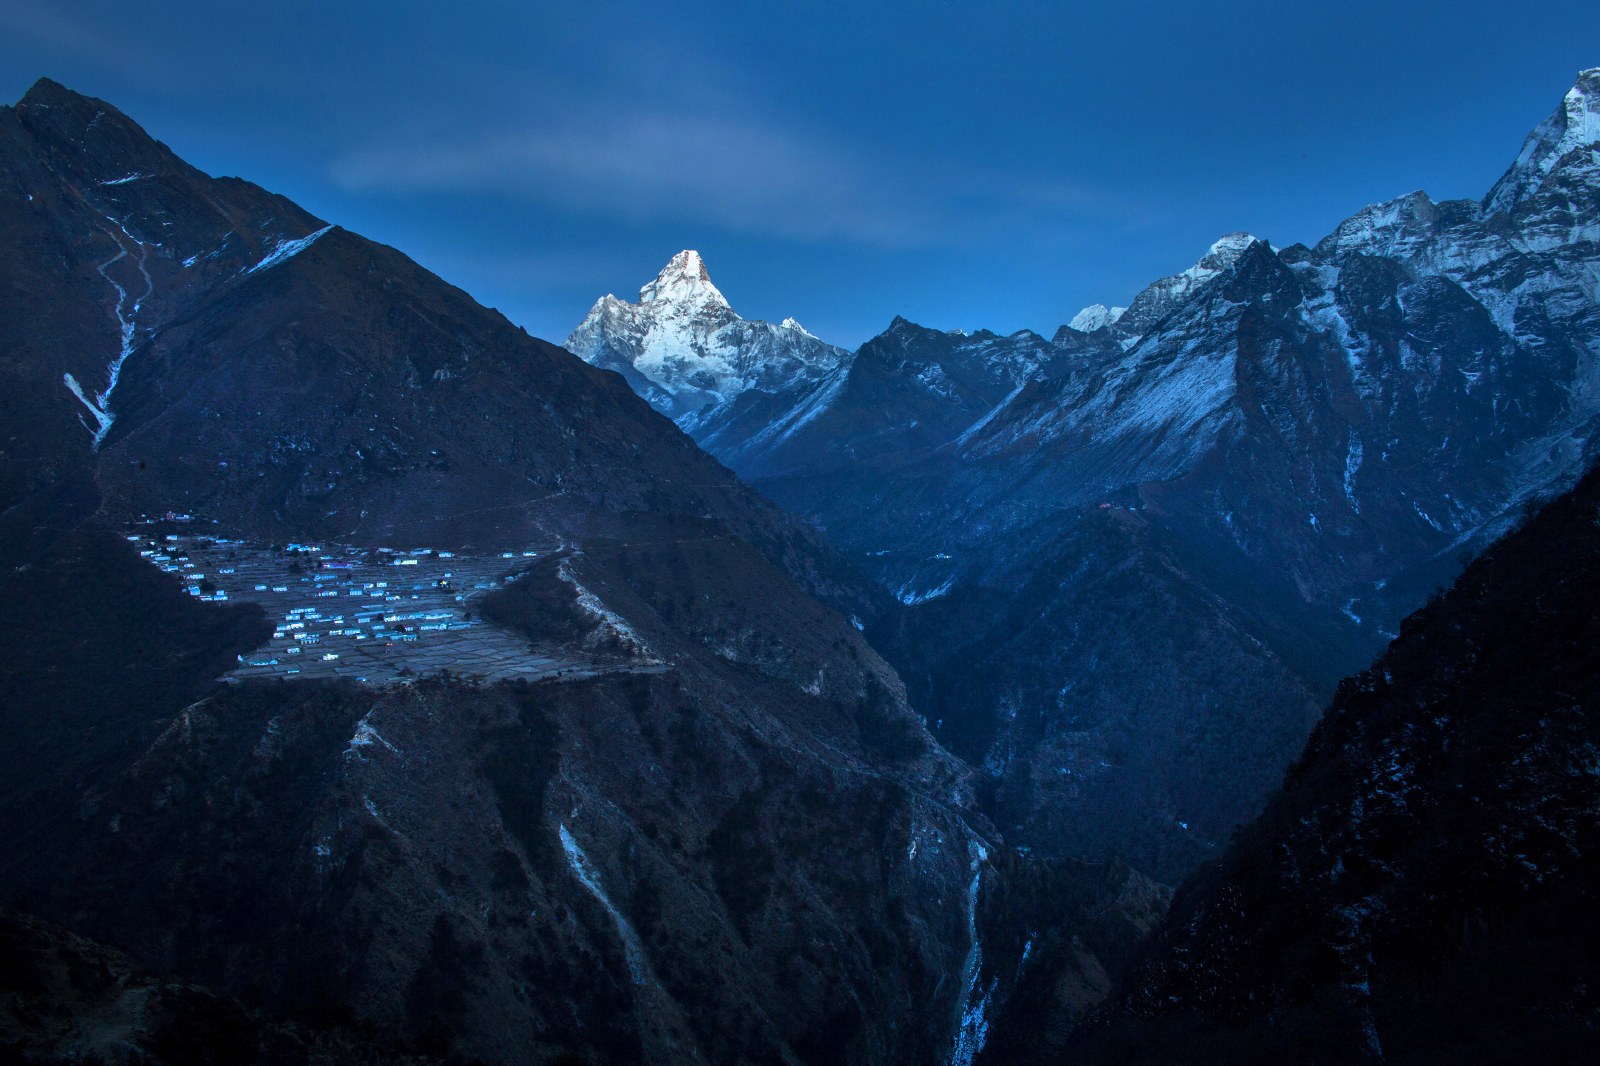 The village of Phortse has more Everest summiters than any other place in the world.  Over 60 people have reached the summit of the mountain from this one town, and nearly every household makes its living working on climbing expeditions.